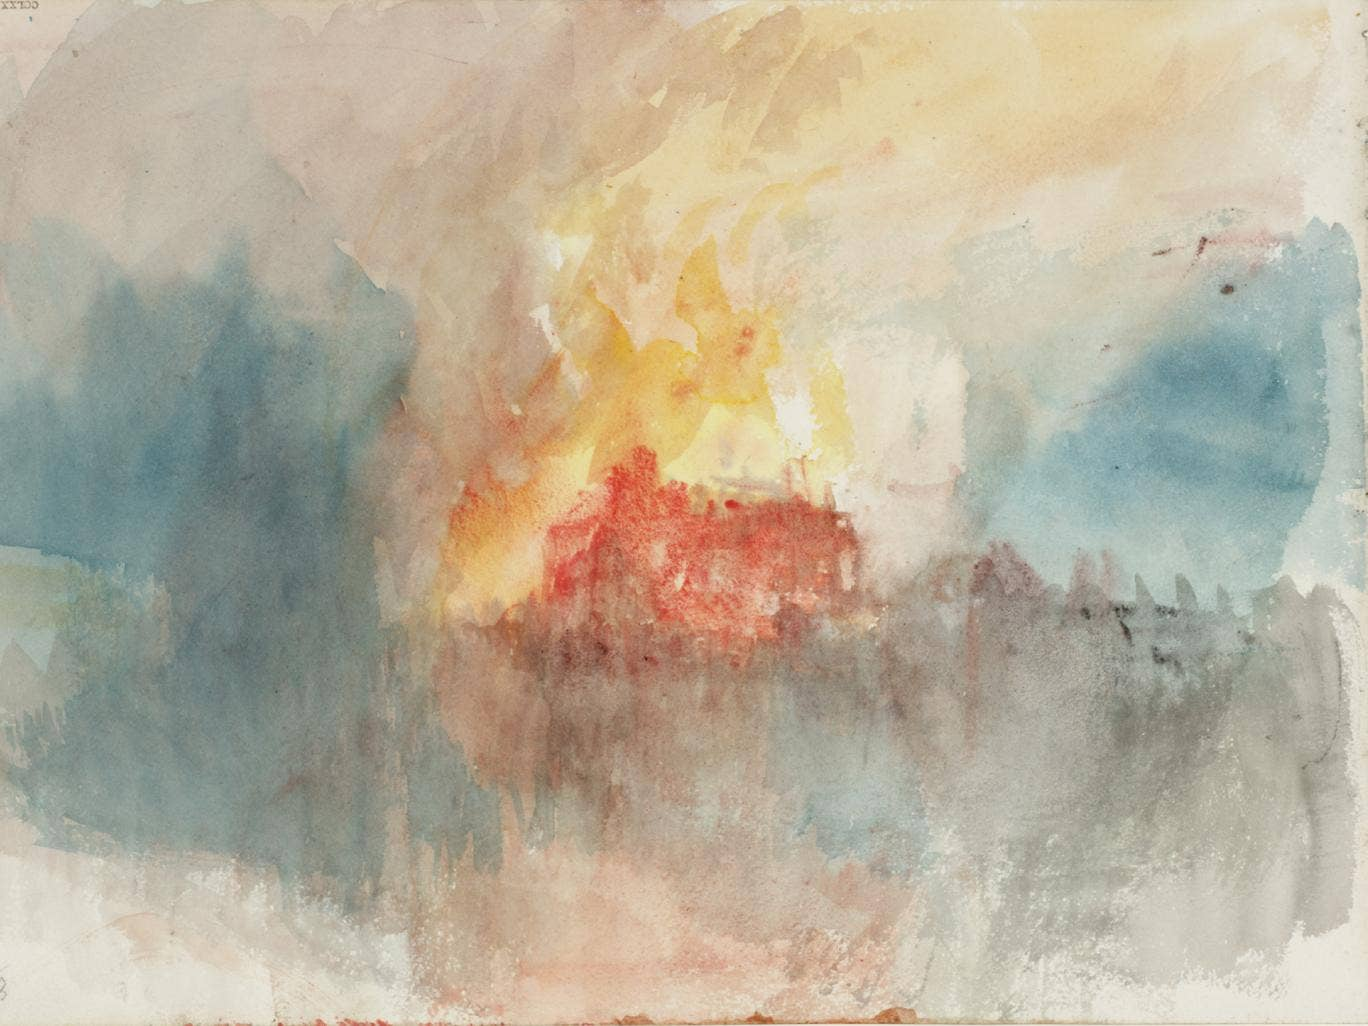 Experts now believe 'The Burning of the Houses of Parliament', a collection including nine watercolours by JMW Turner, inspired by a blaze on 16 October 1834, actually depict a fire at the Tower of London seven years later